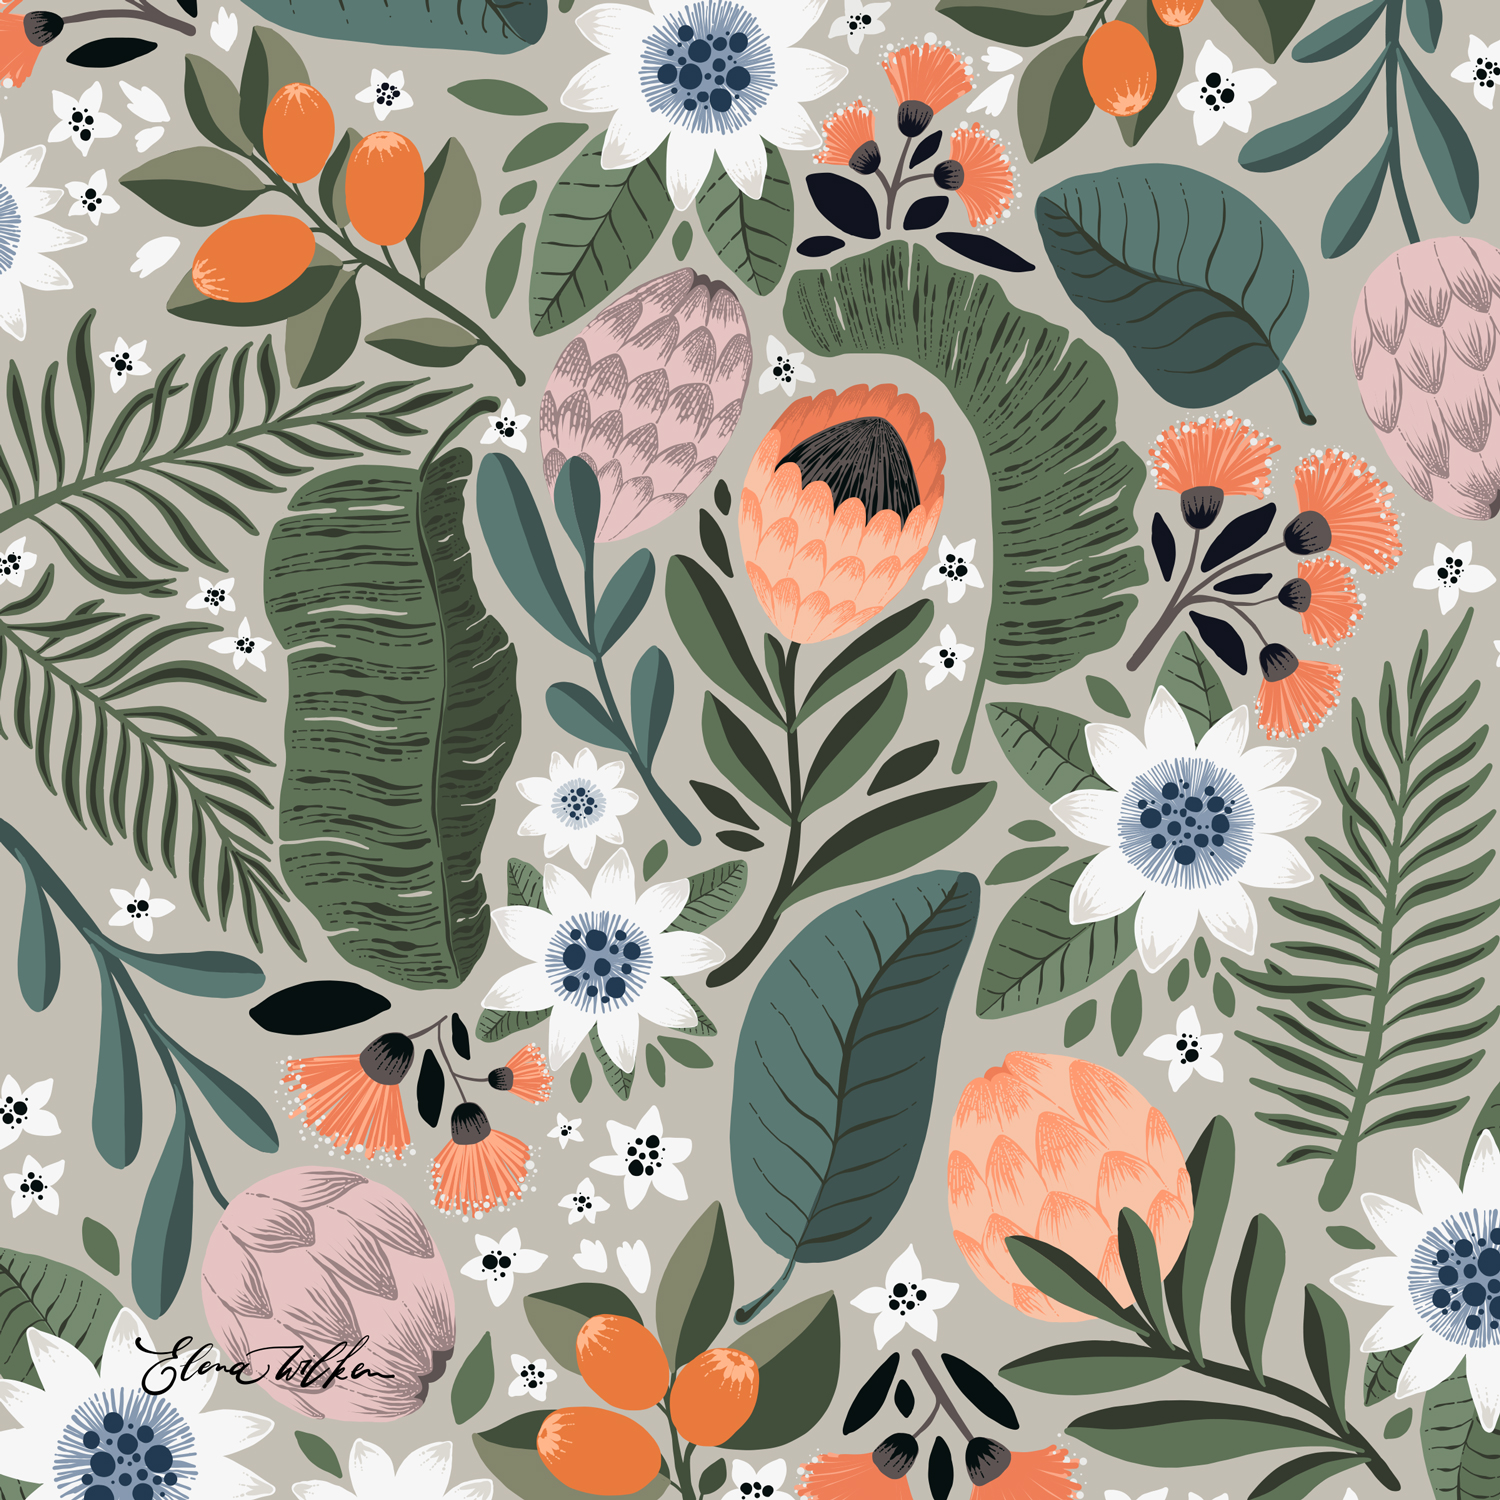 Tropical - Elena Wilken surface pattern design